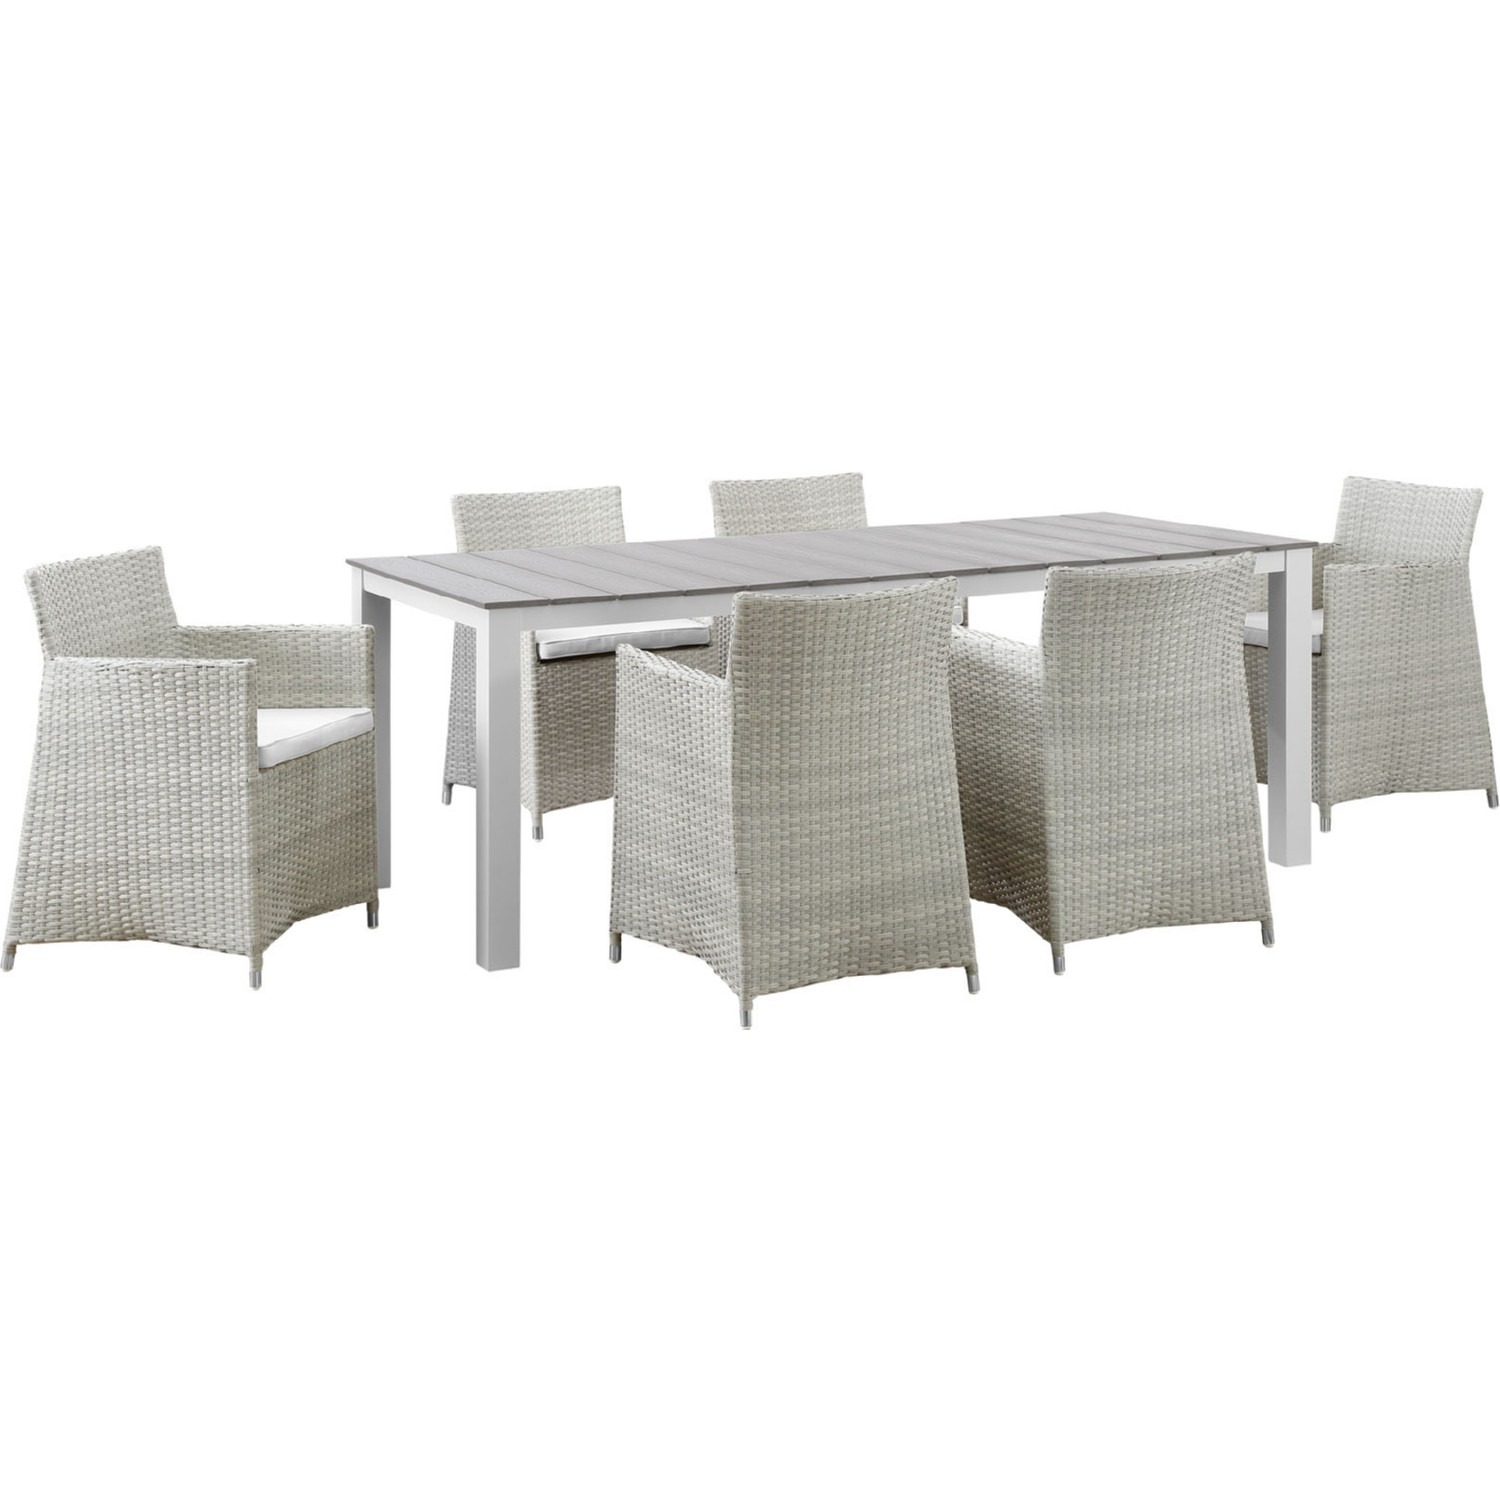 Modern 7-Piece Dining Set In Gray Rattan Weave - image-0